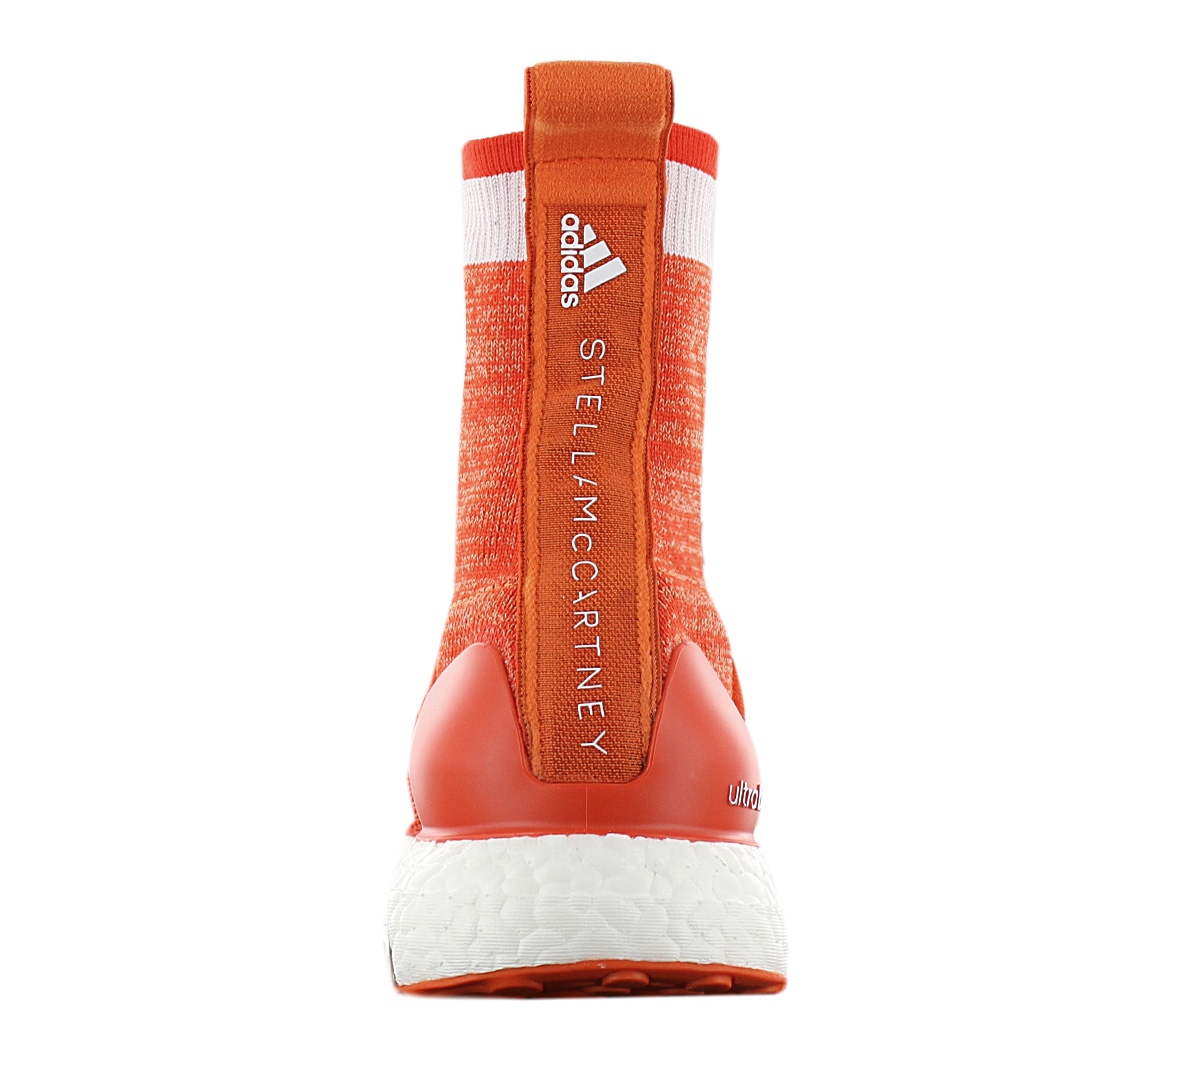 Details about Adidas by Stella Mccartney Ultra Boost x mid Sneaker CM7736 Shoes Trainers